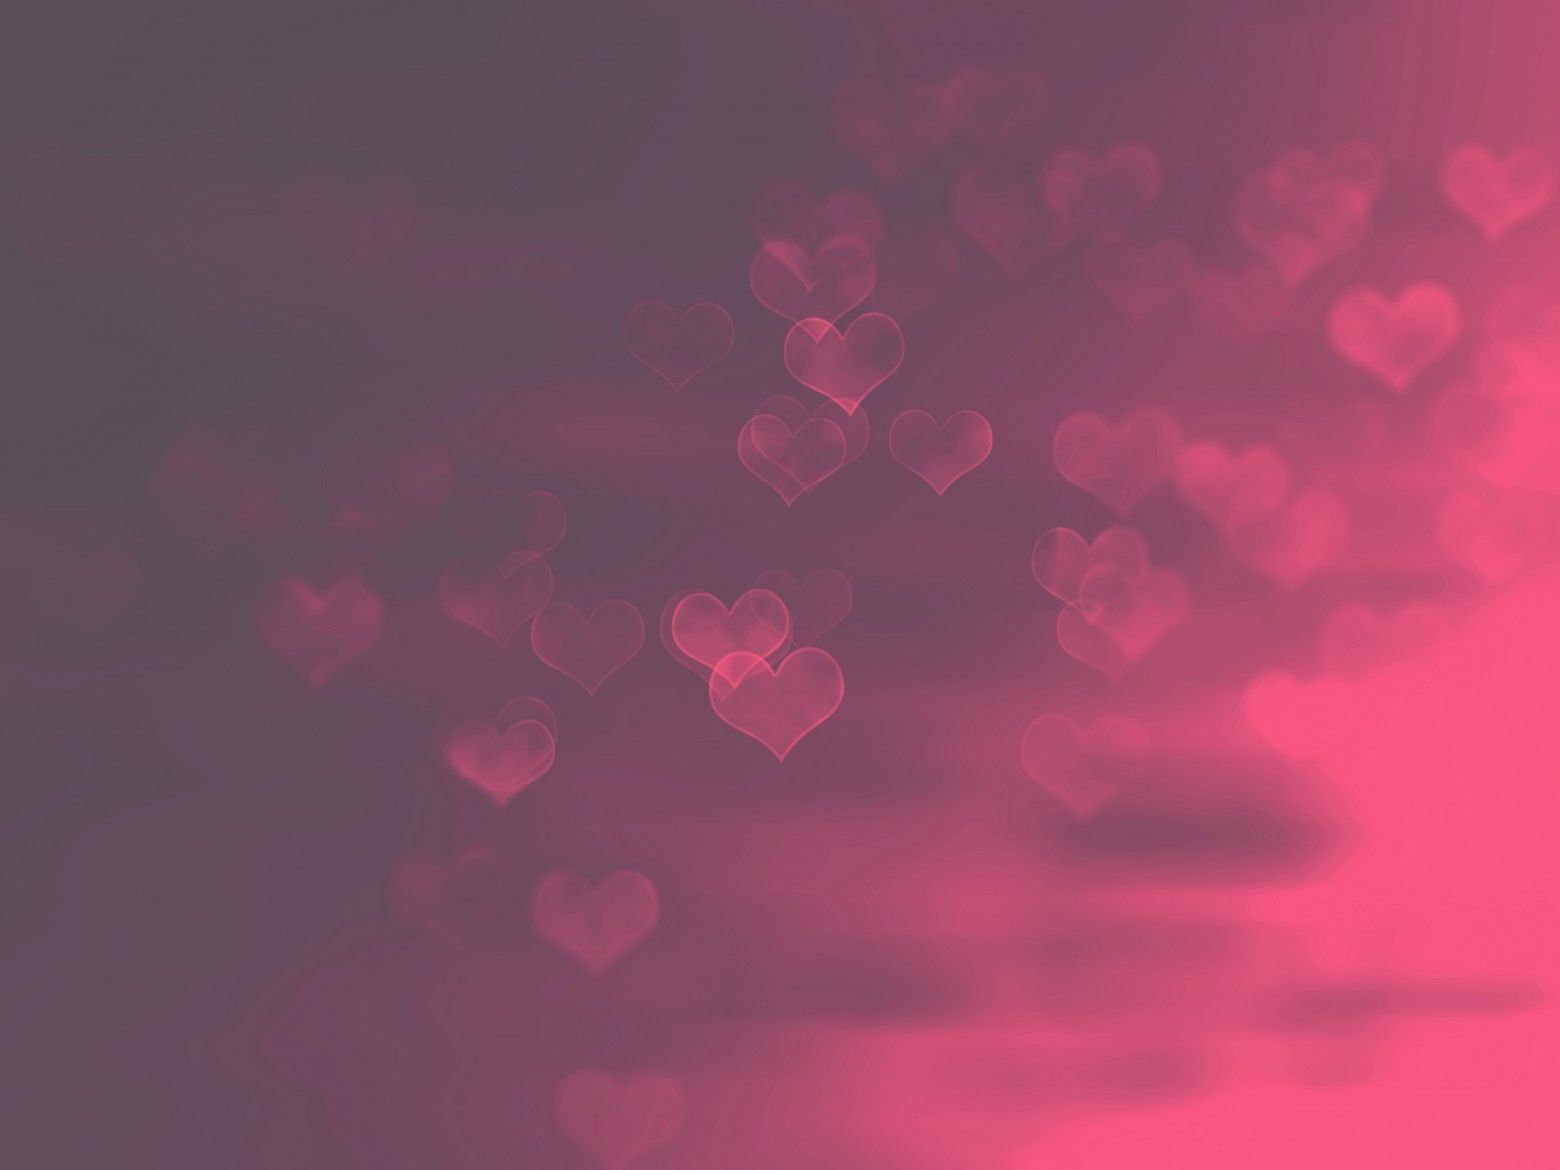 hearts background texture  u2013 pink vintage